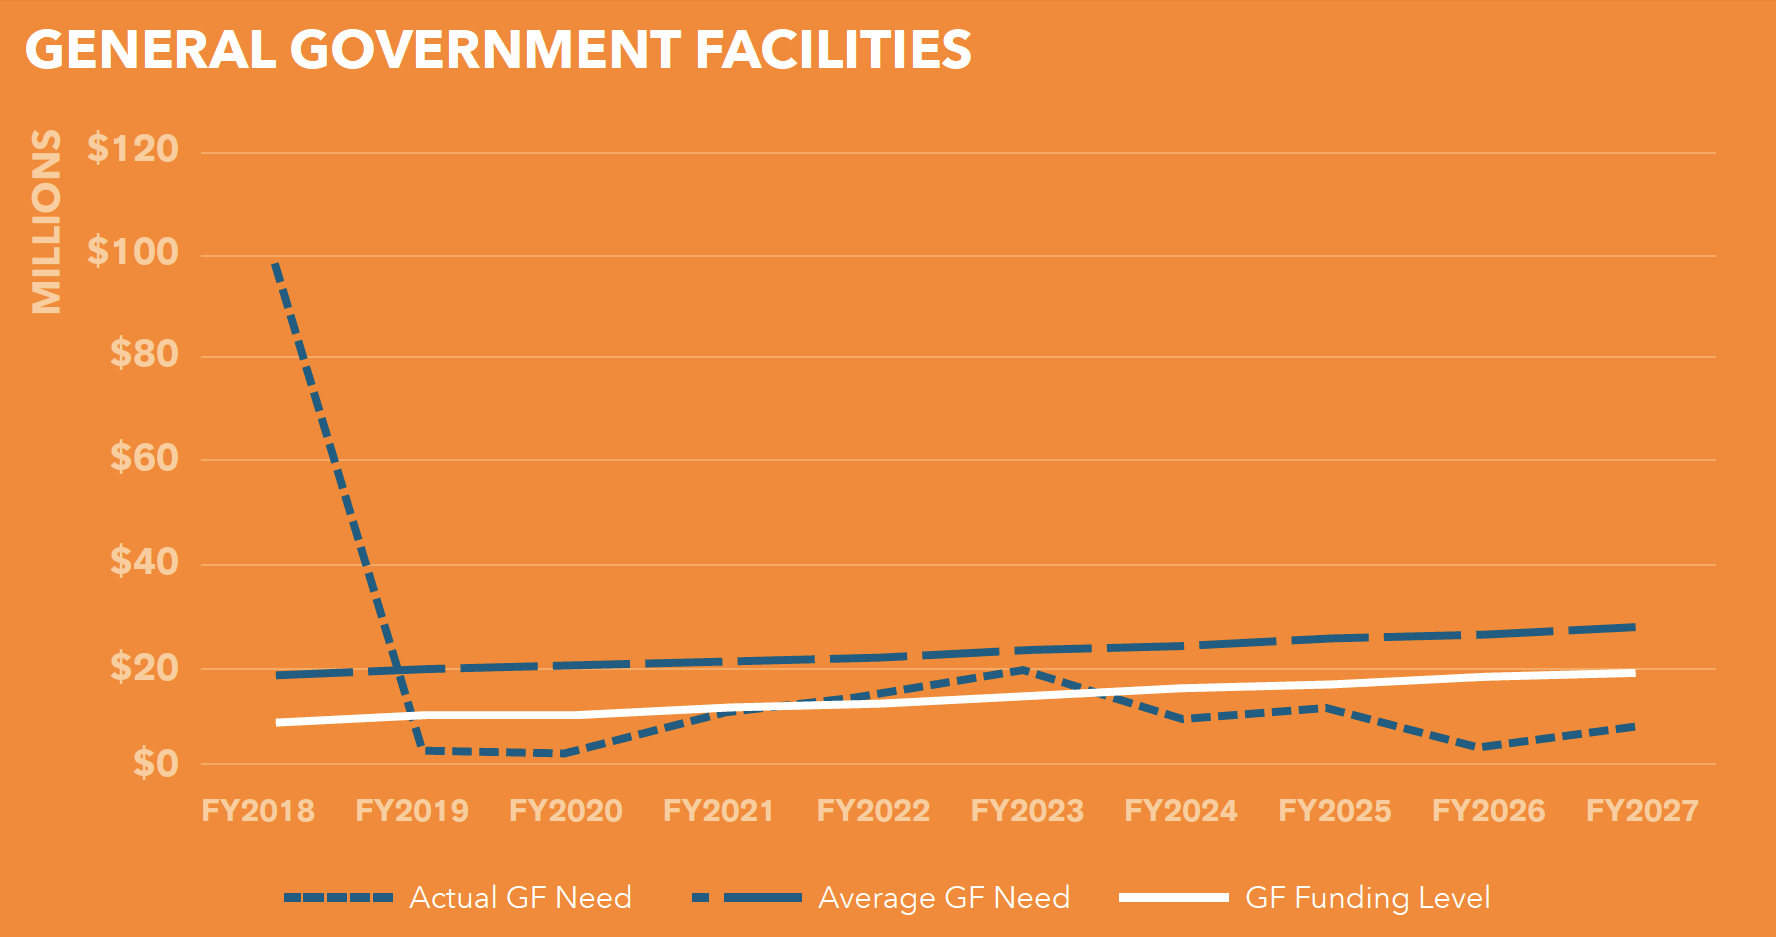 Chart 7.1 - General Government Facilities